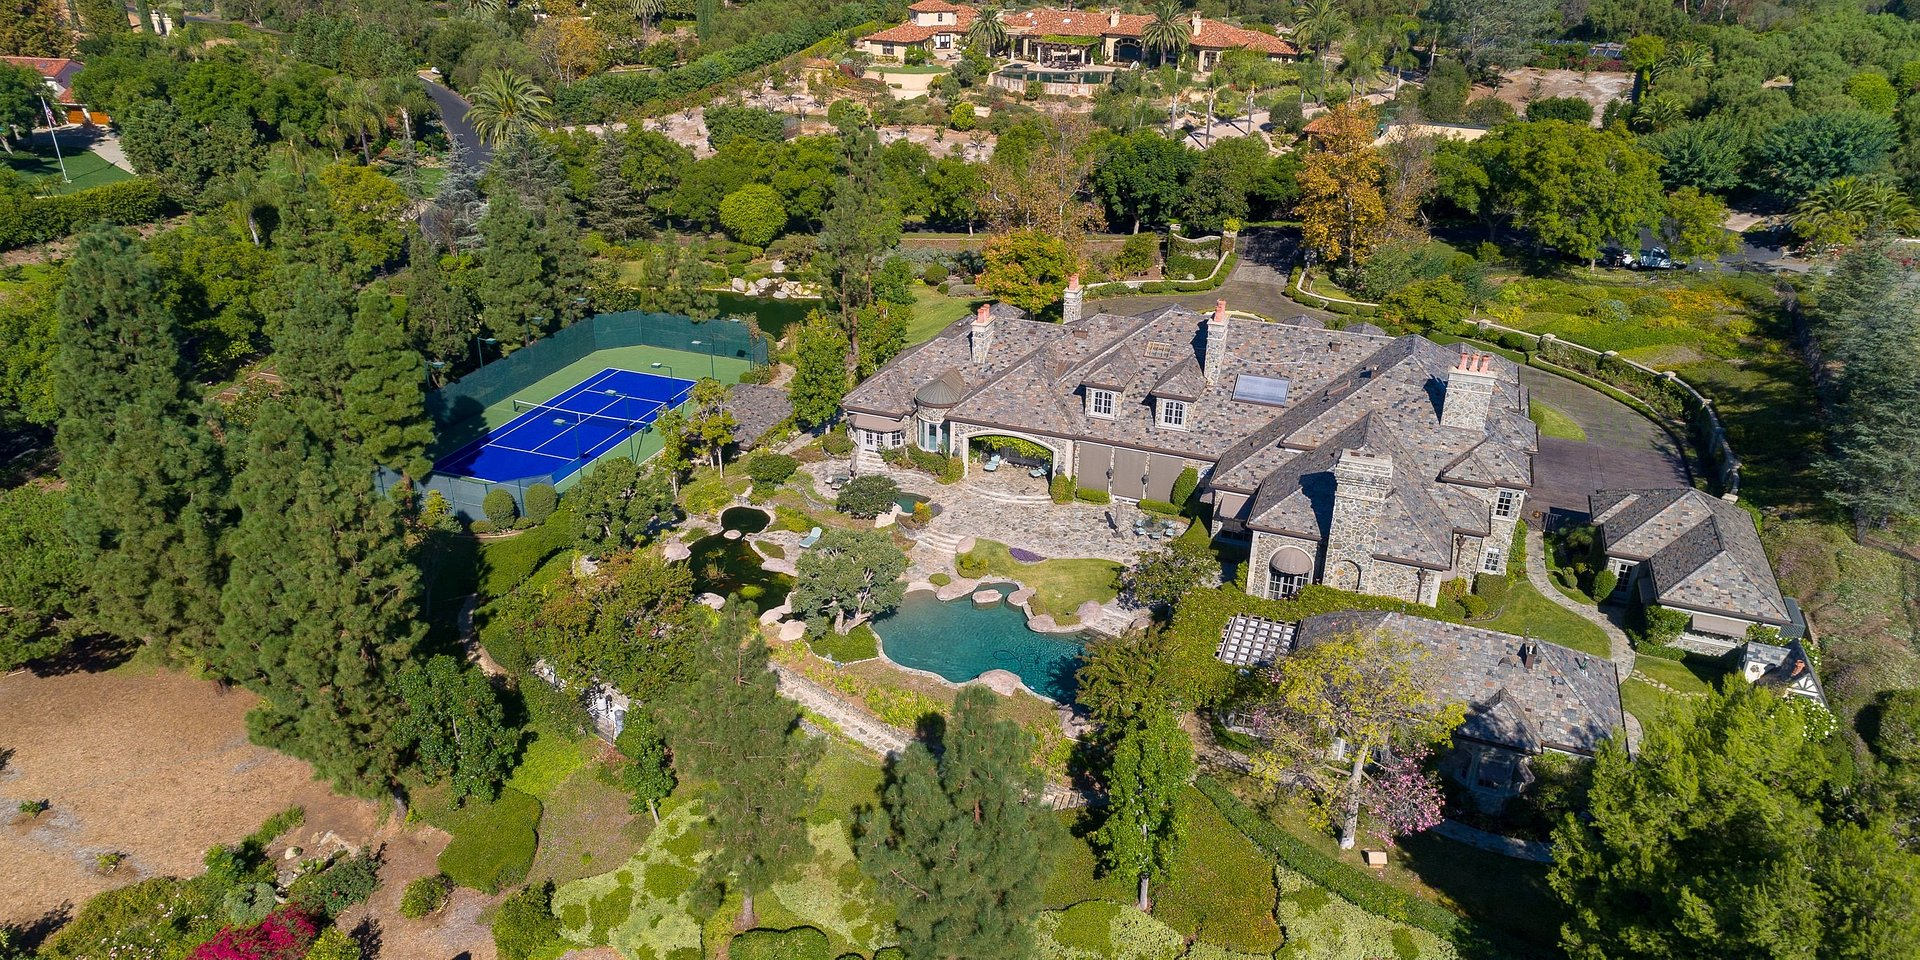 Coldwell Banker Residential Brokerage Lists Rancho Santa Fe Property for $15 Million